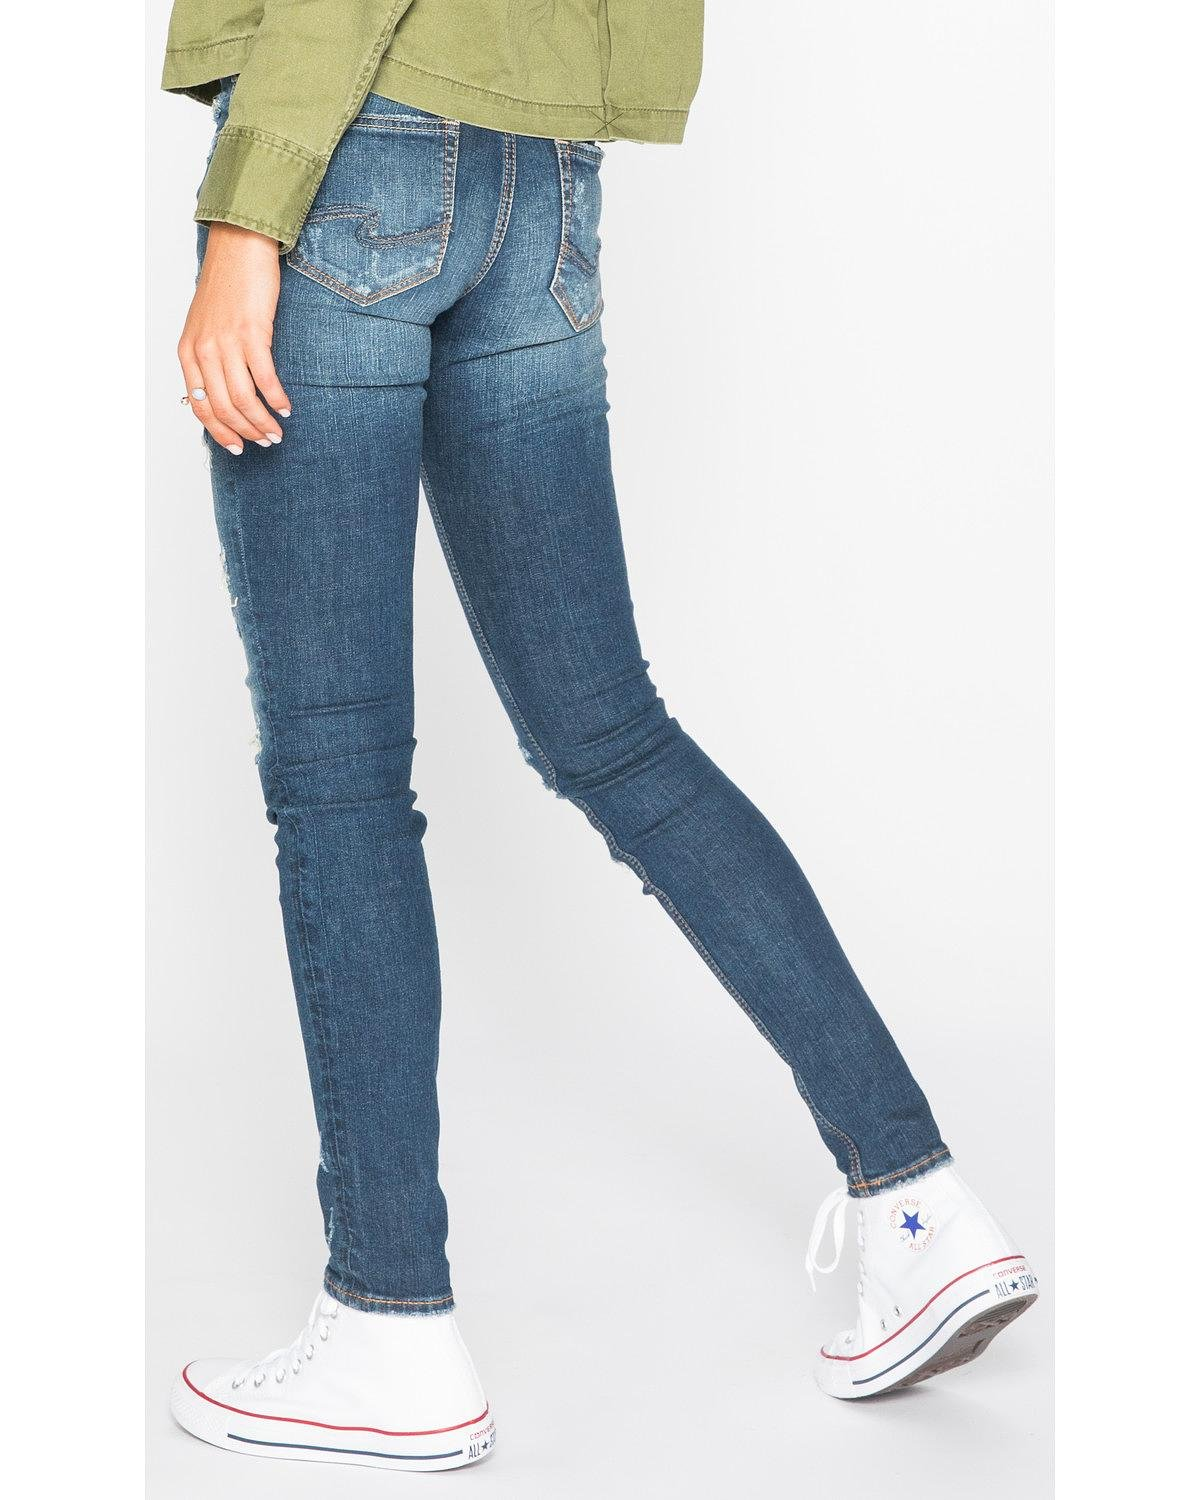 Silver Jeans Co. Women's Suki Curvy Fit Mid Rise Skinny Jeans, Vintage Medium Destroyed, 29 X 31